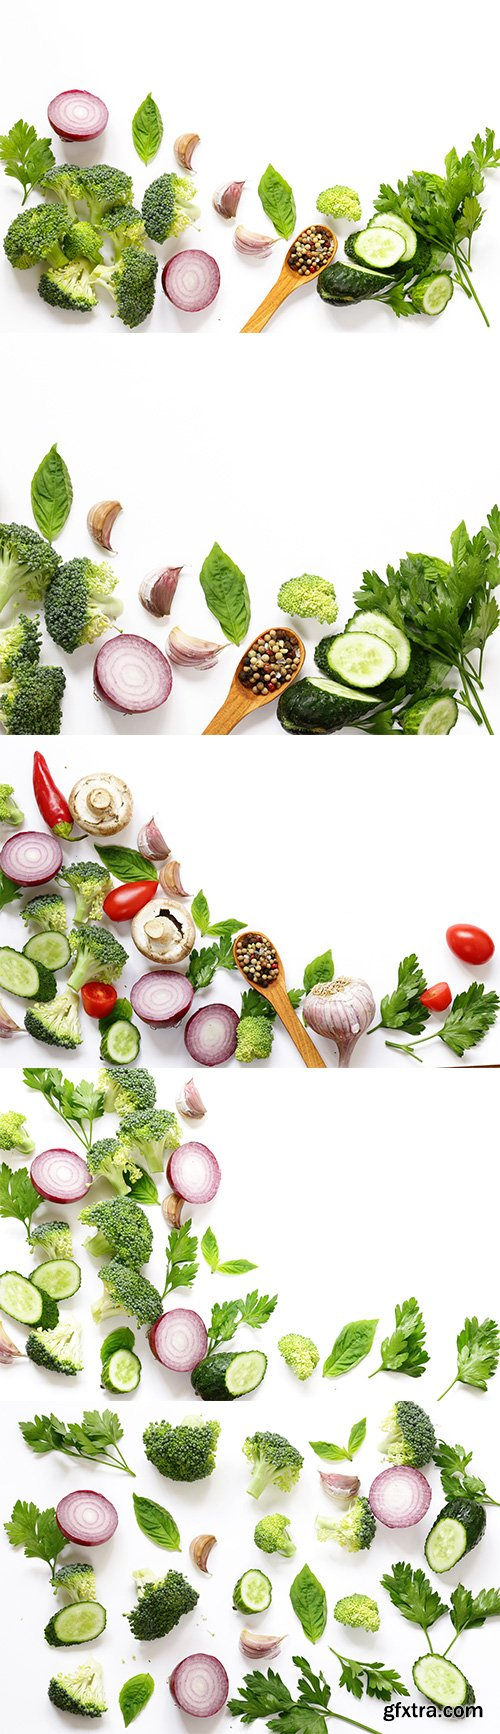 Healthy Eating Vegetables And Herbs Isolated - 5xJPGs